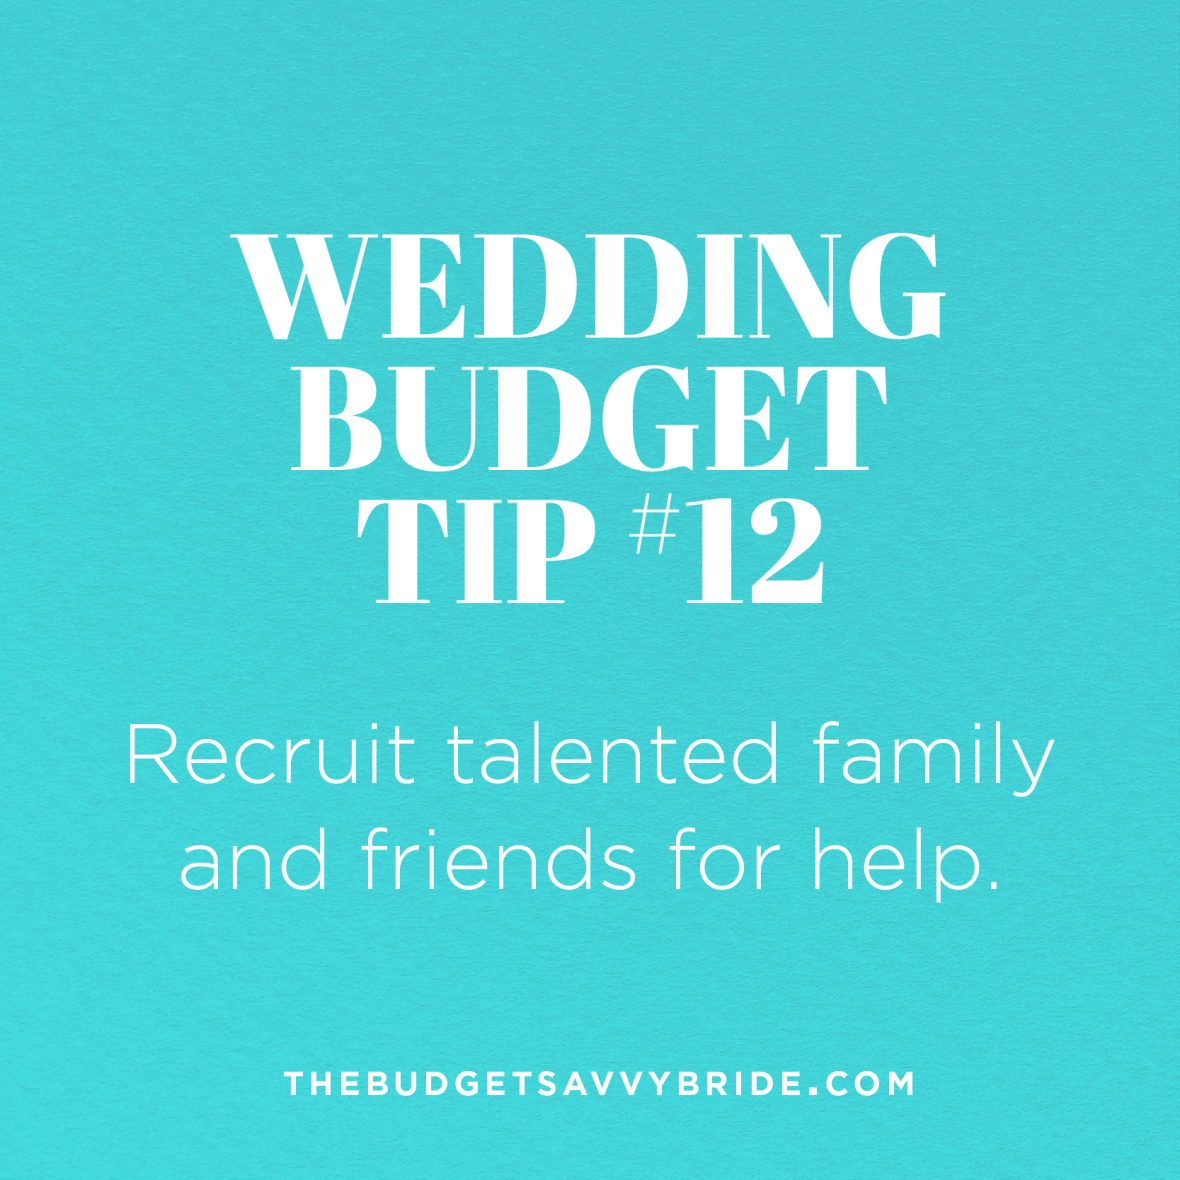 recruit talented friends and family for your wedding